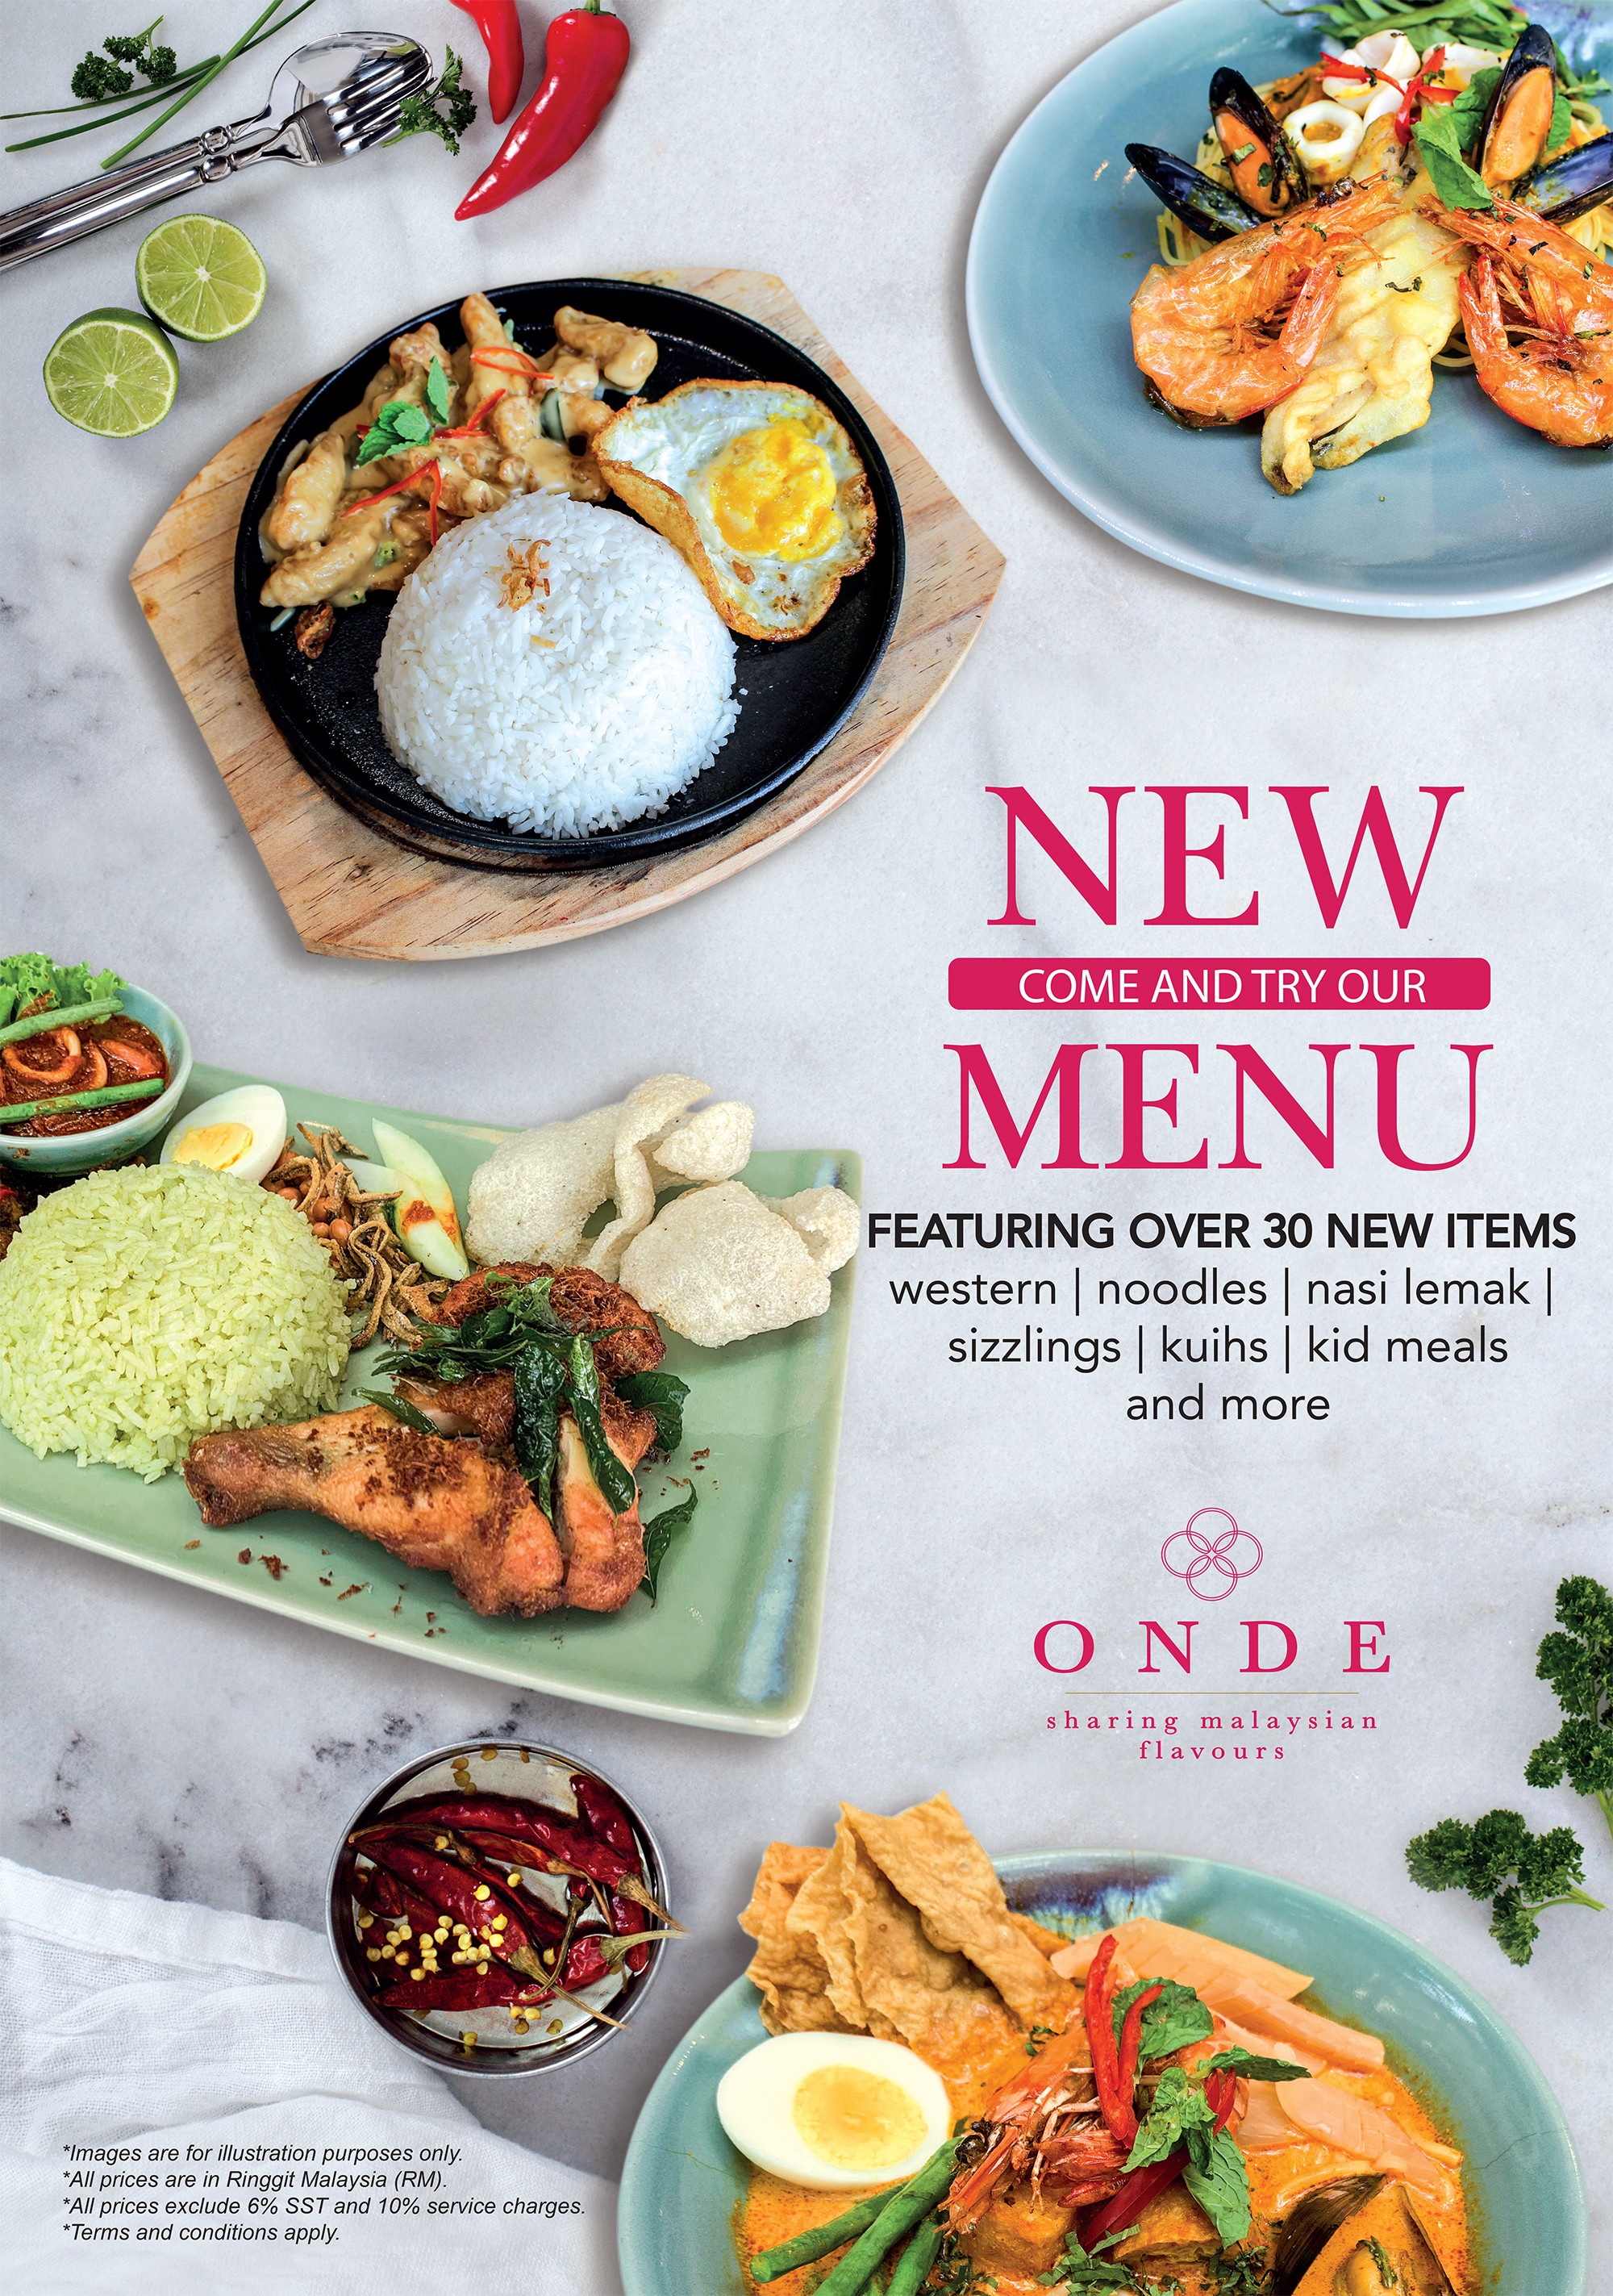 Onde New Menu 2019